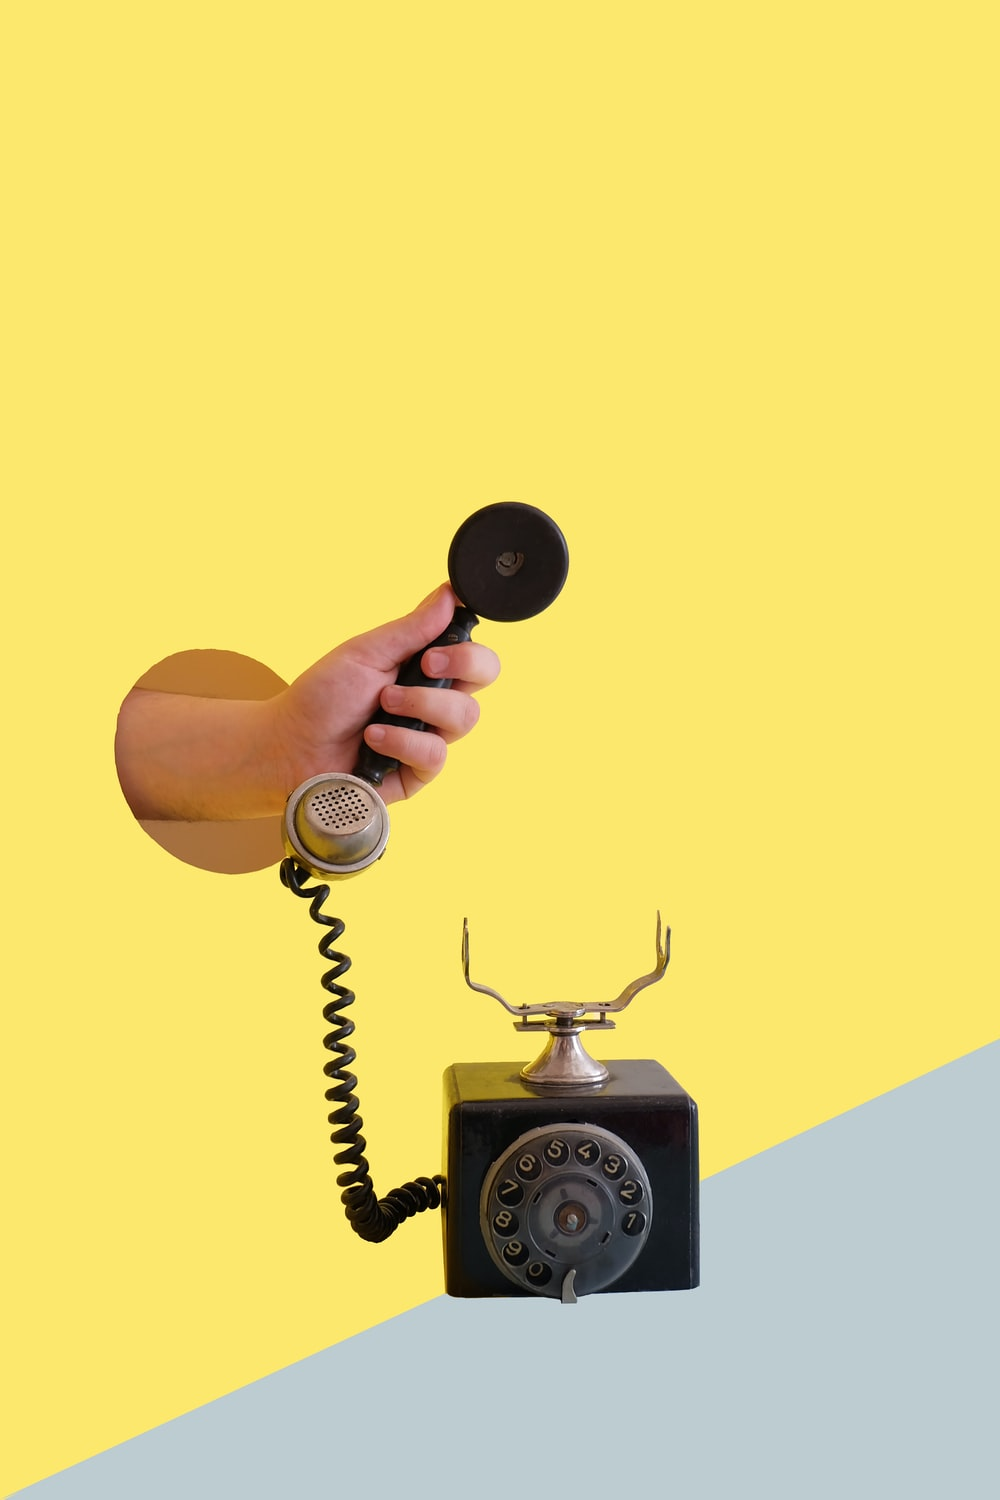 person holding black rotary telephone